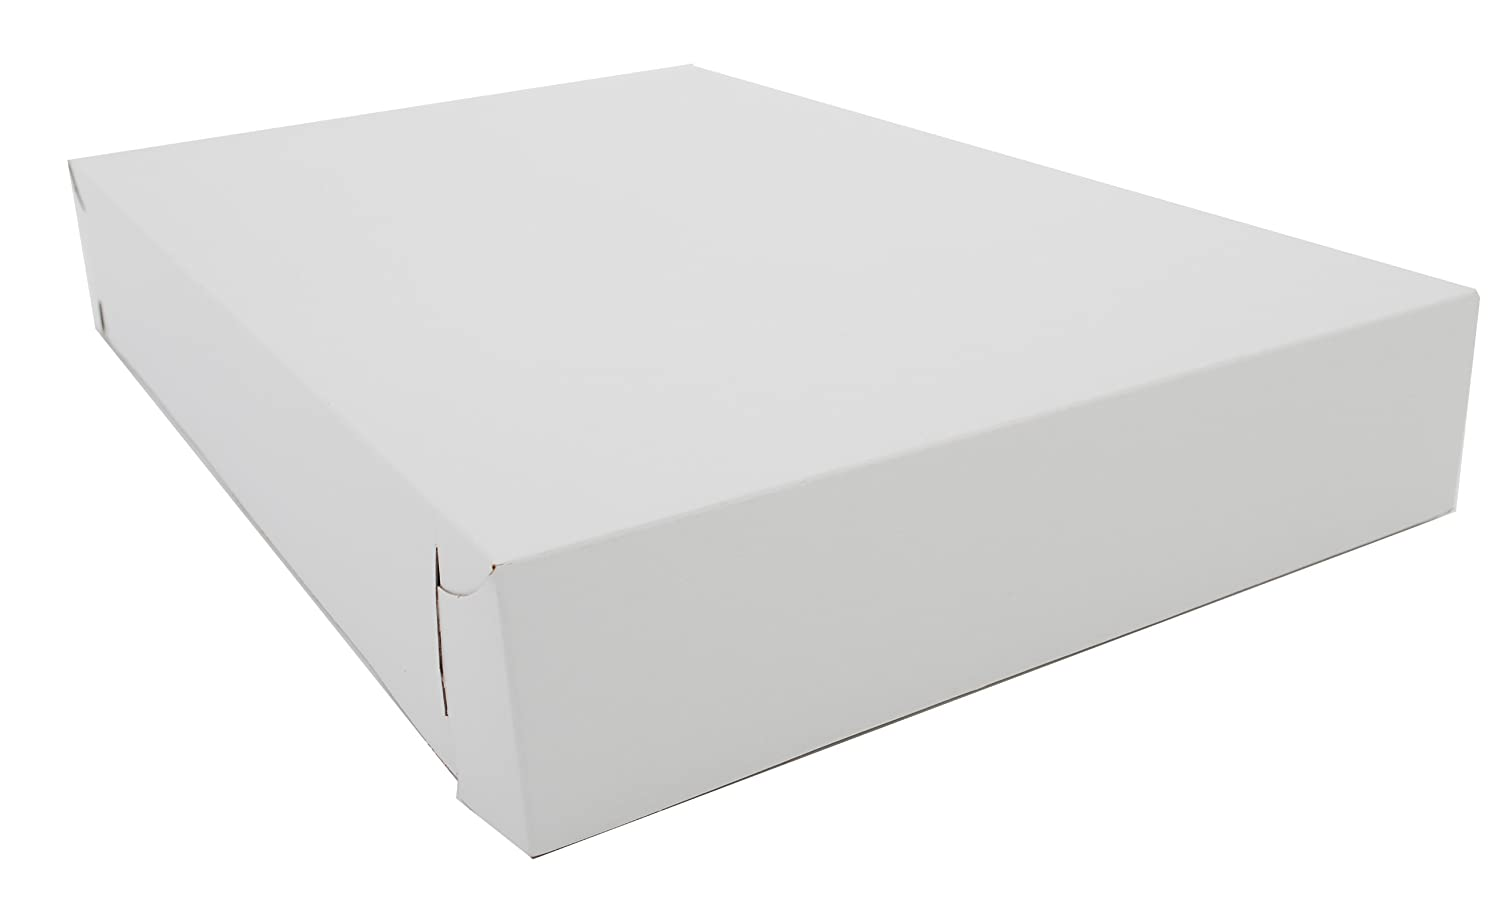 Southern Champion Tray 2021 Clay Coated Kraft Paperboard White Lock Corner Donut Tray, 17